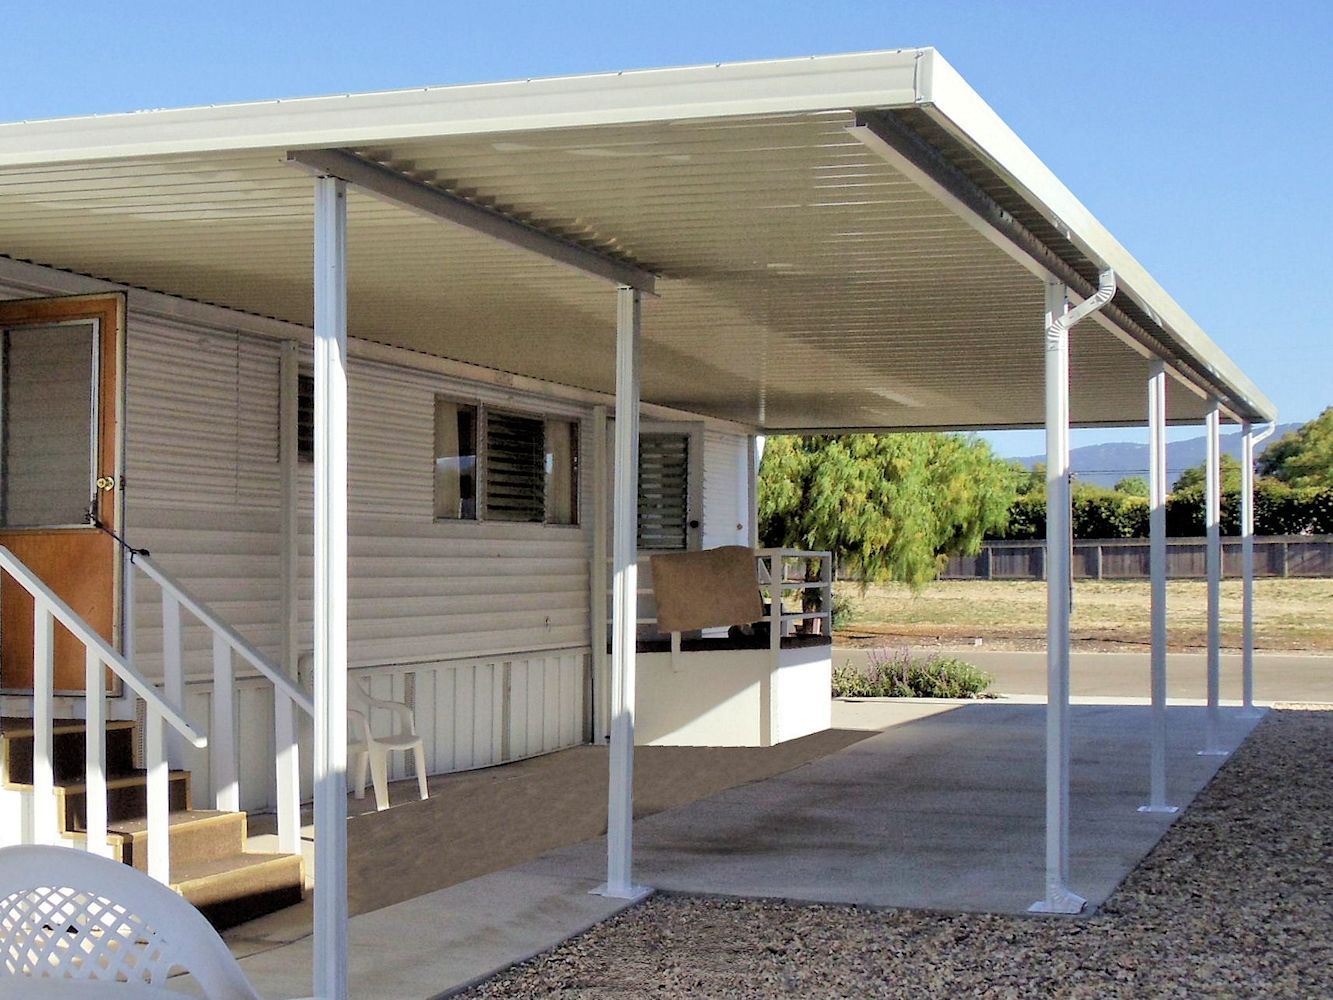 Tucson Patio Cover Your Tucson Source For Shade